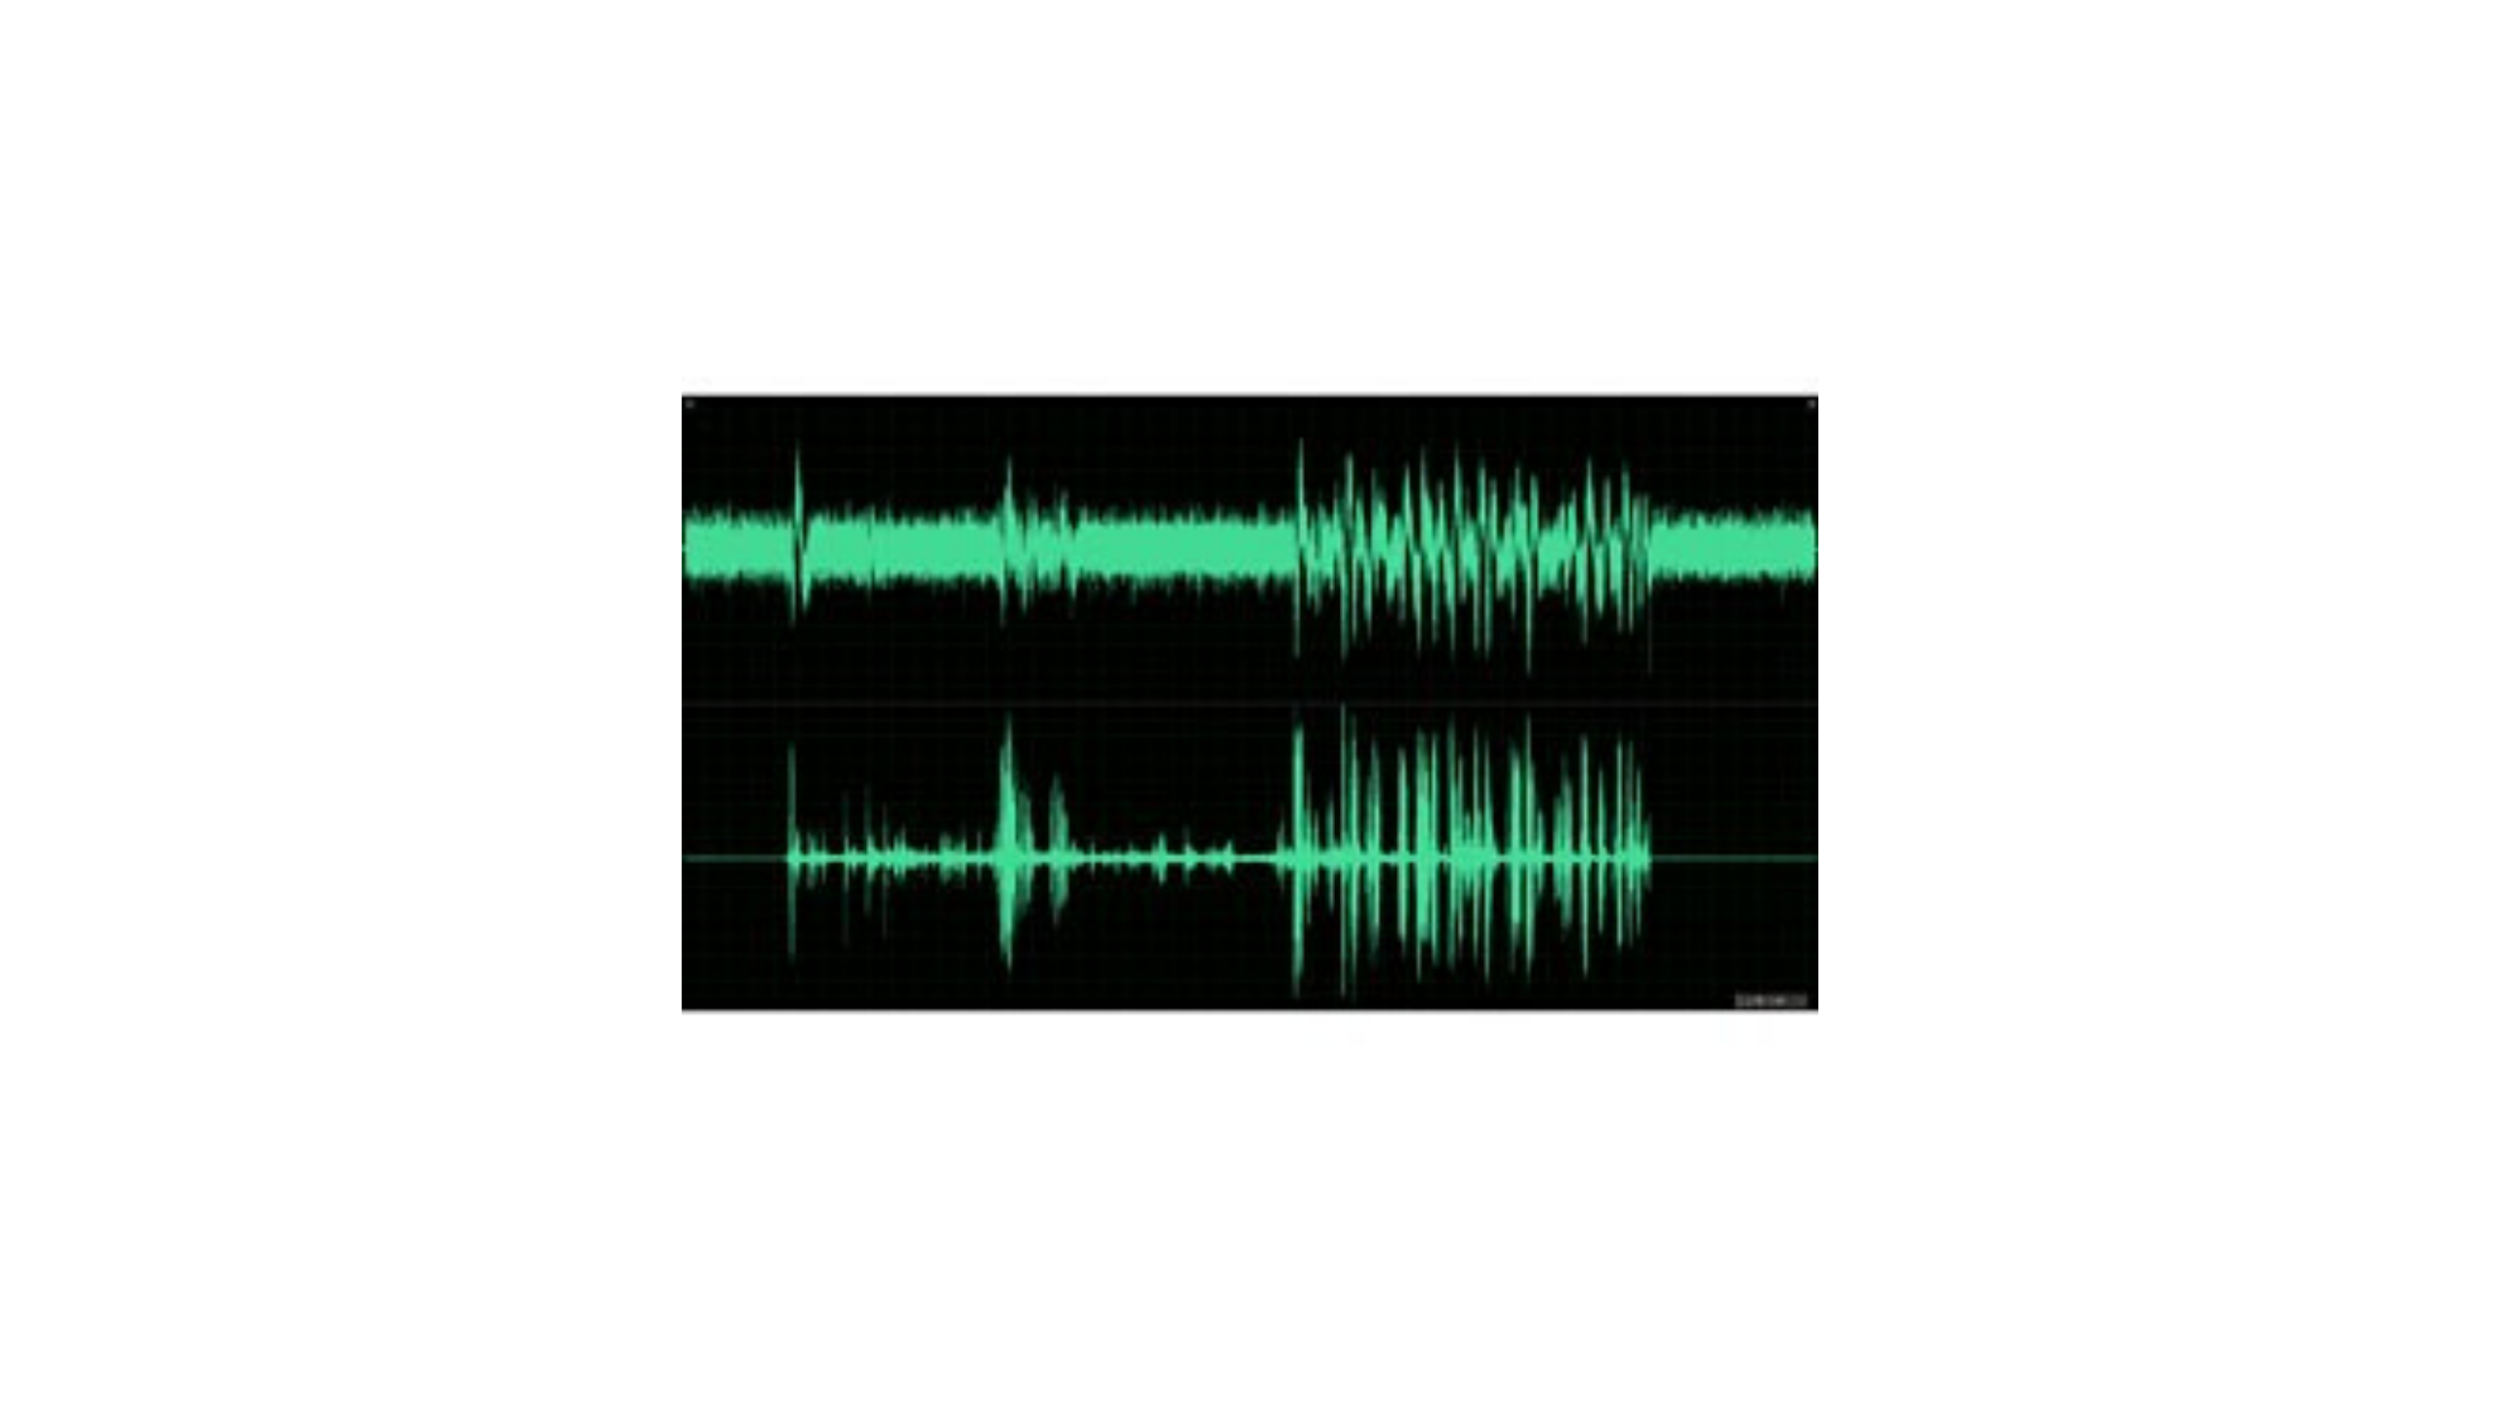 Complete - Complete service adds noise reduction at a customized level to avoid any distortion to the sound of the recording.